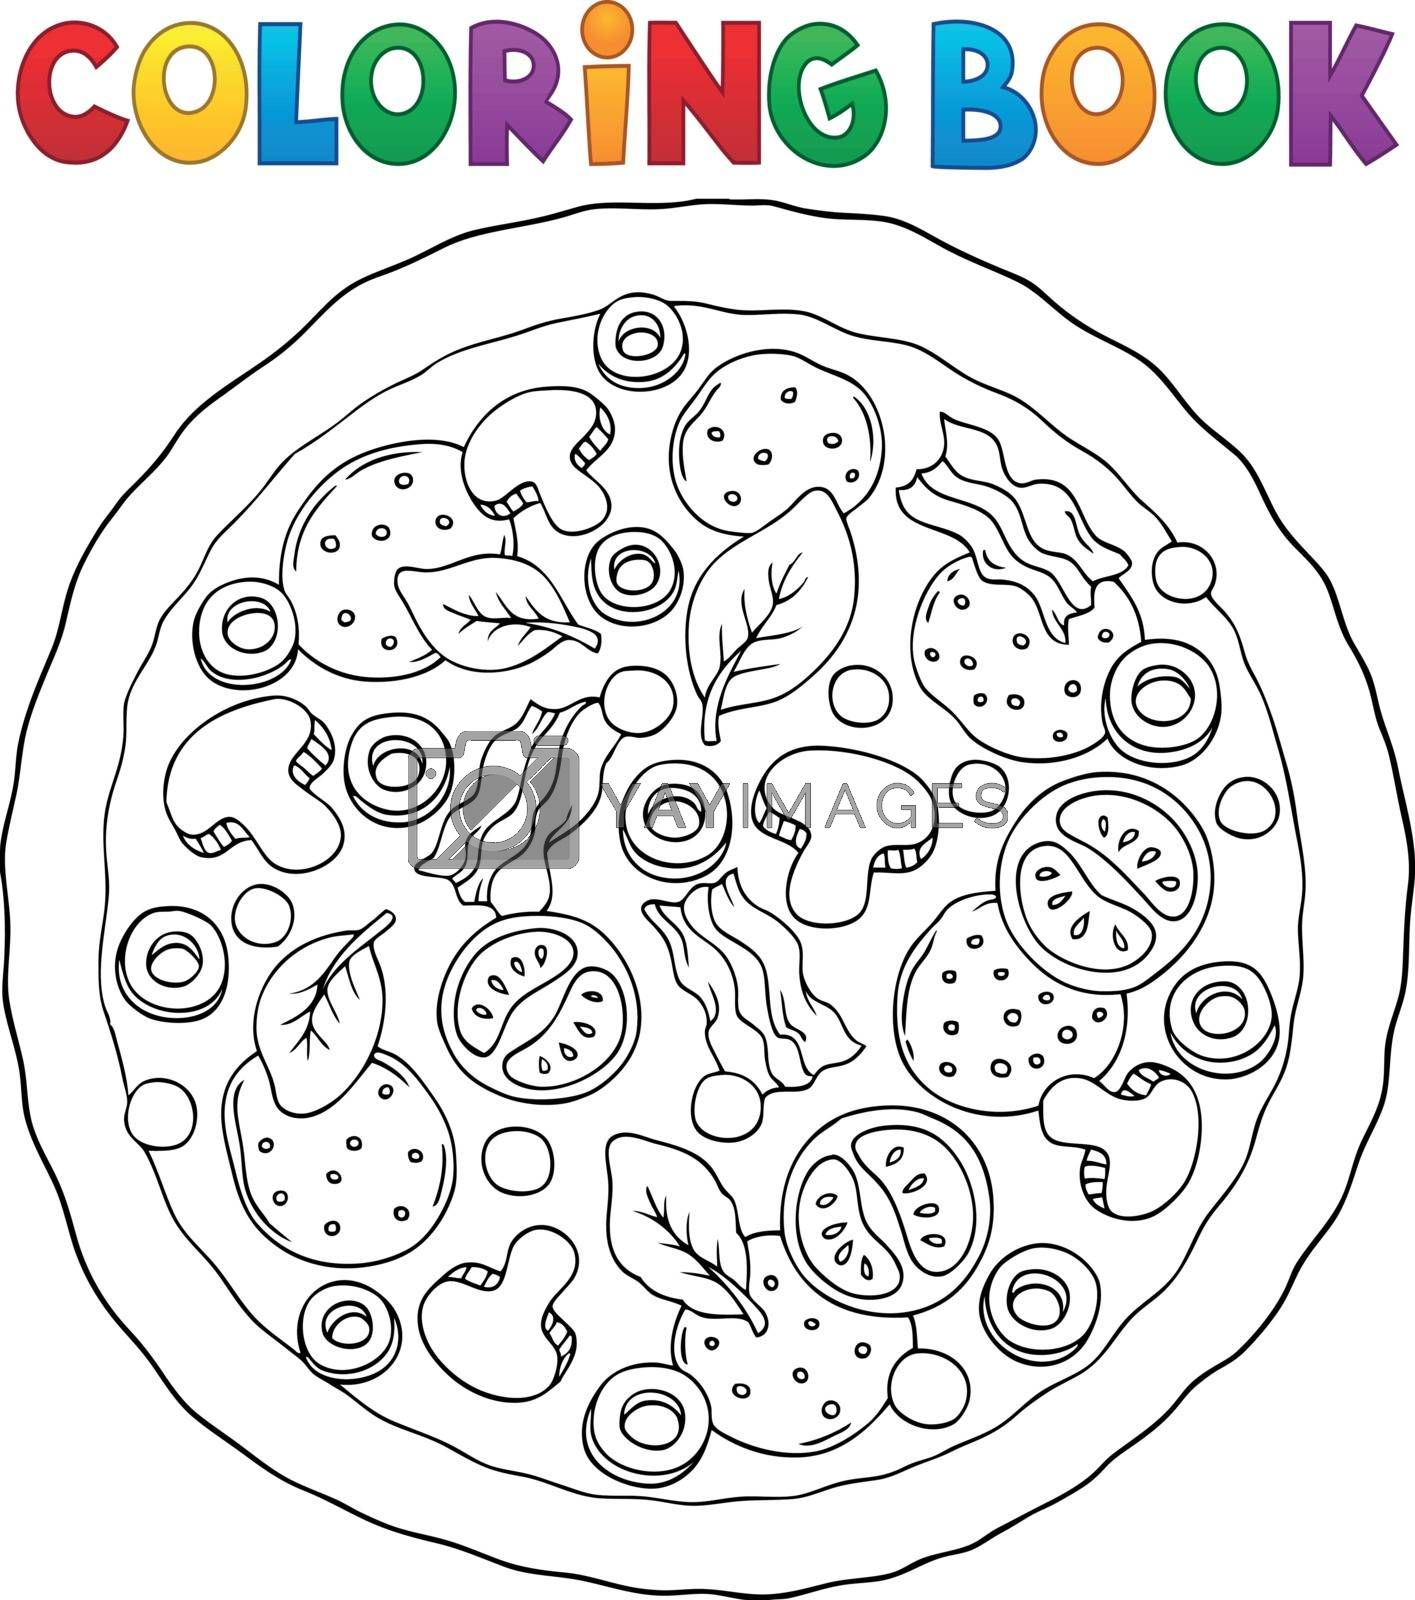 Coloring book whole pizza theme 1 - eps10 vector illustration.